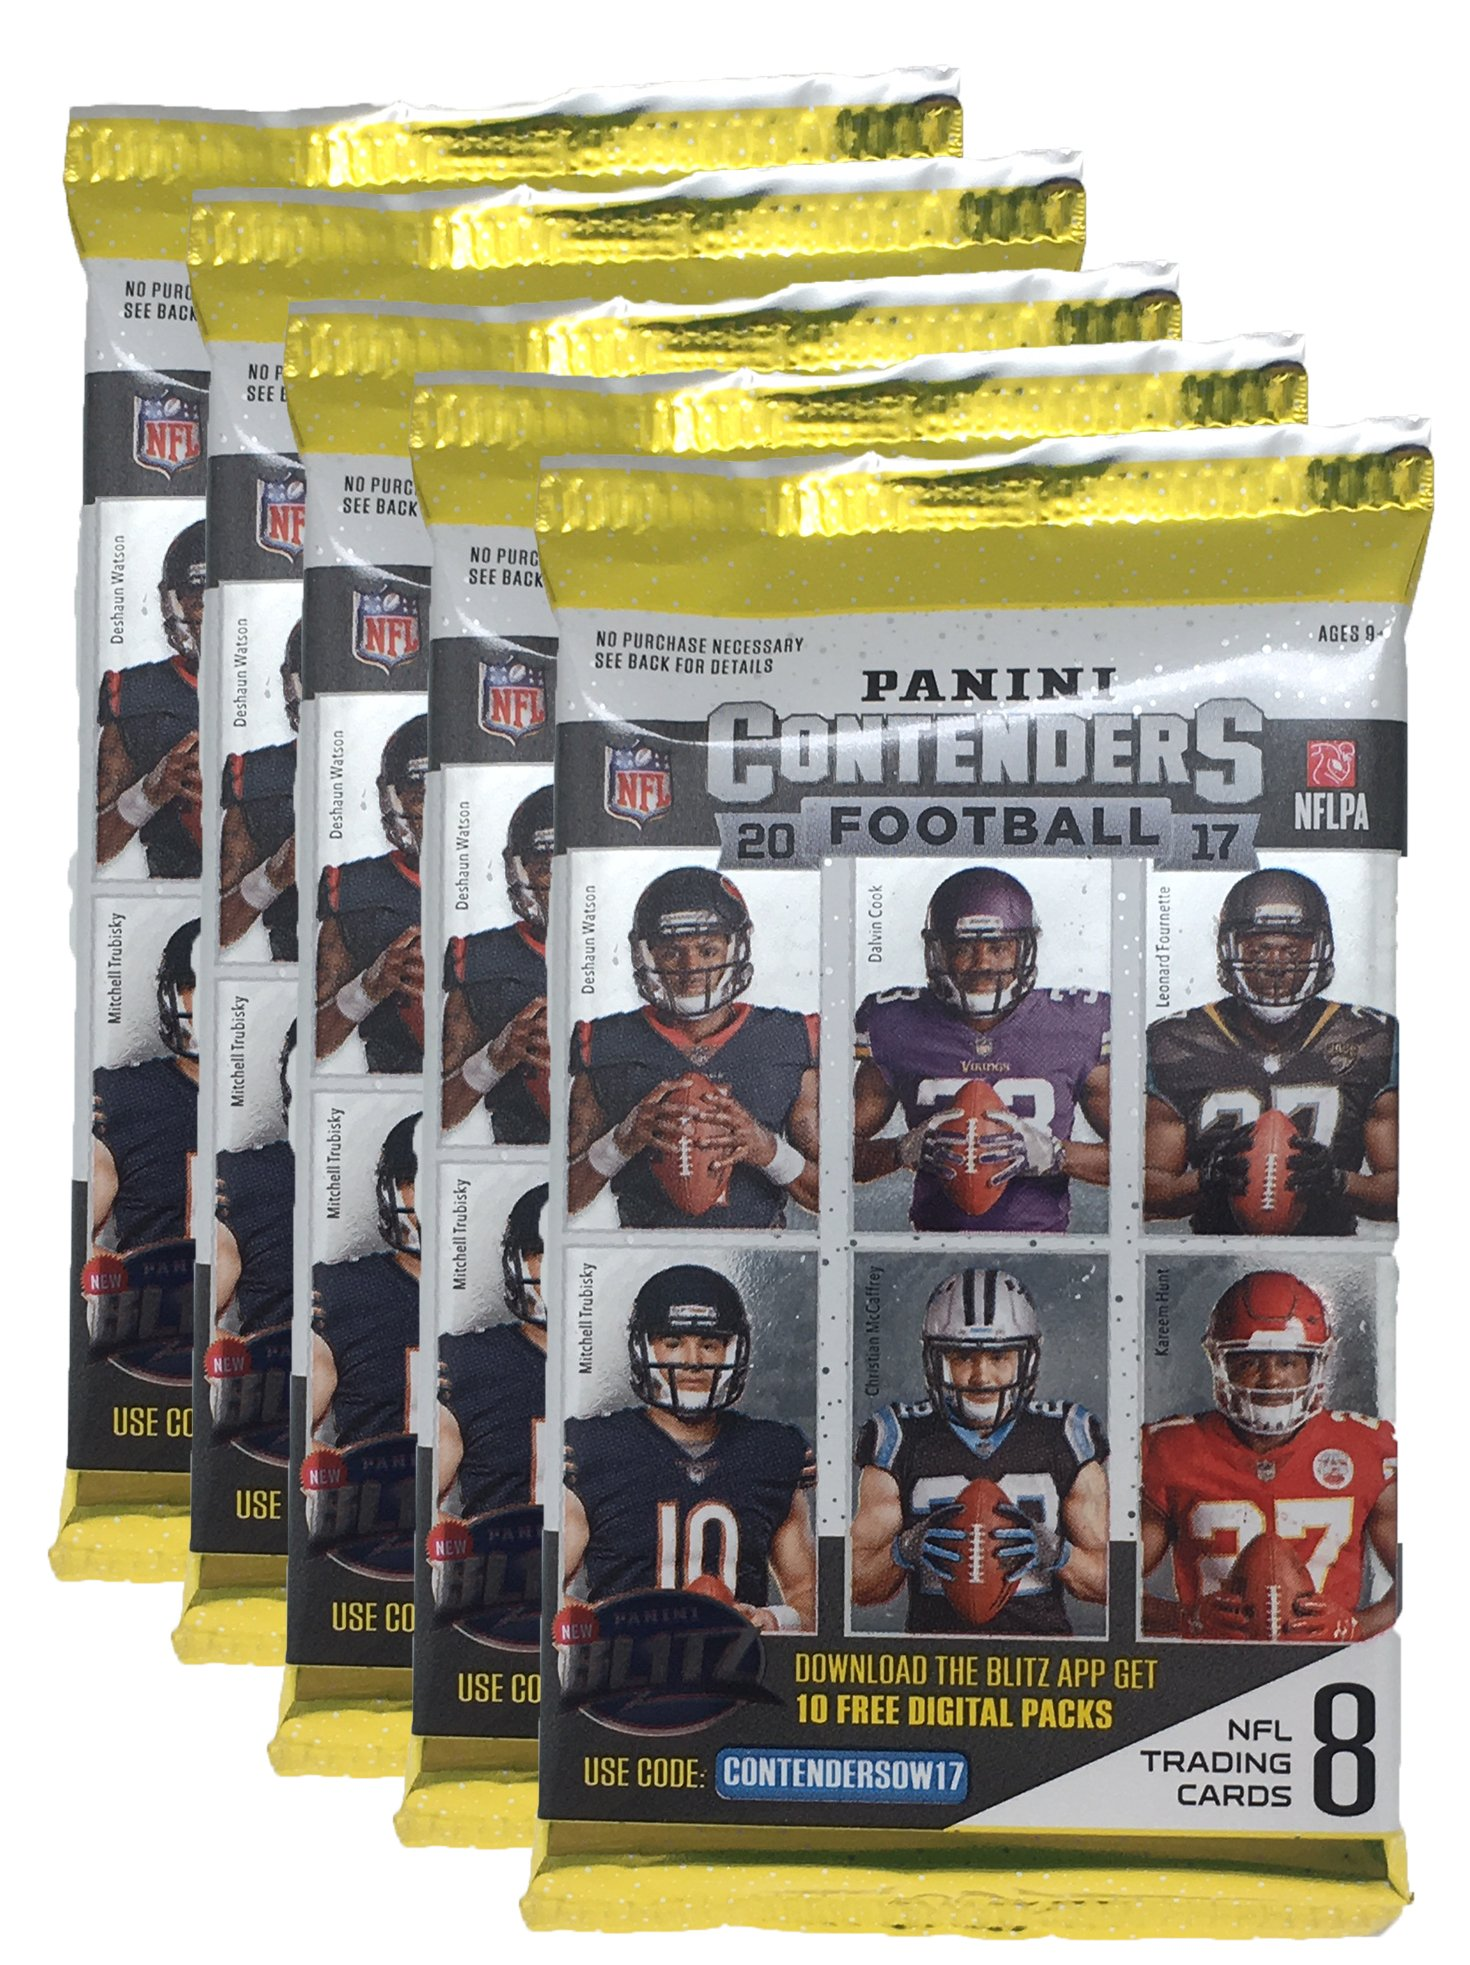 2017 NFL Panini Contenders Football Cards Factory Sealed Blaster Box 1 Autograph or Memorabilia Per Box